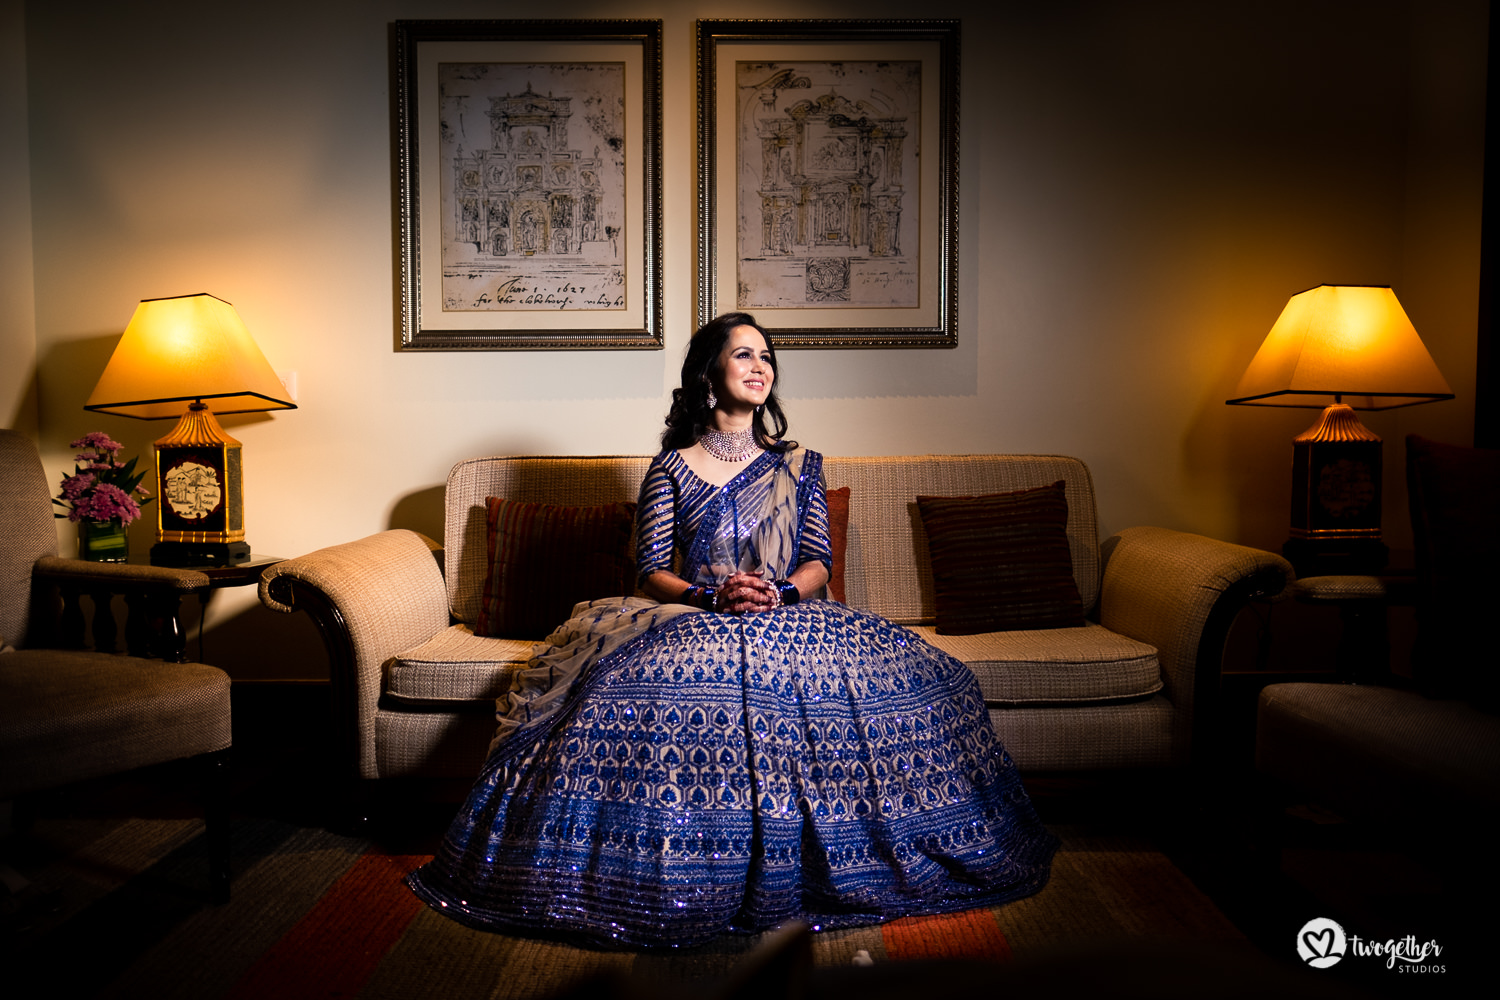 Bride in Manish Malhotra sangeet outfit for her wedding celebration